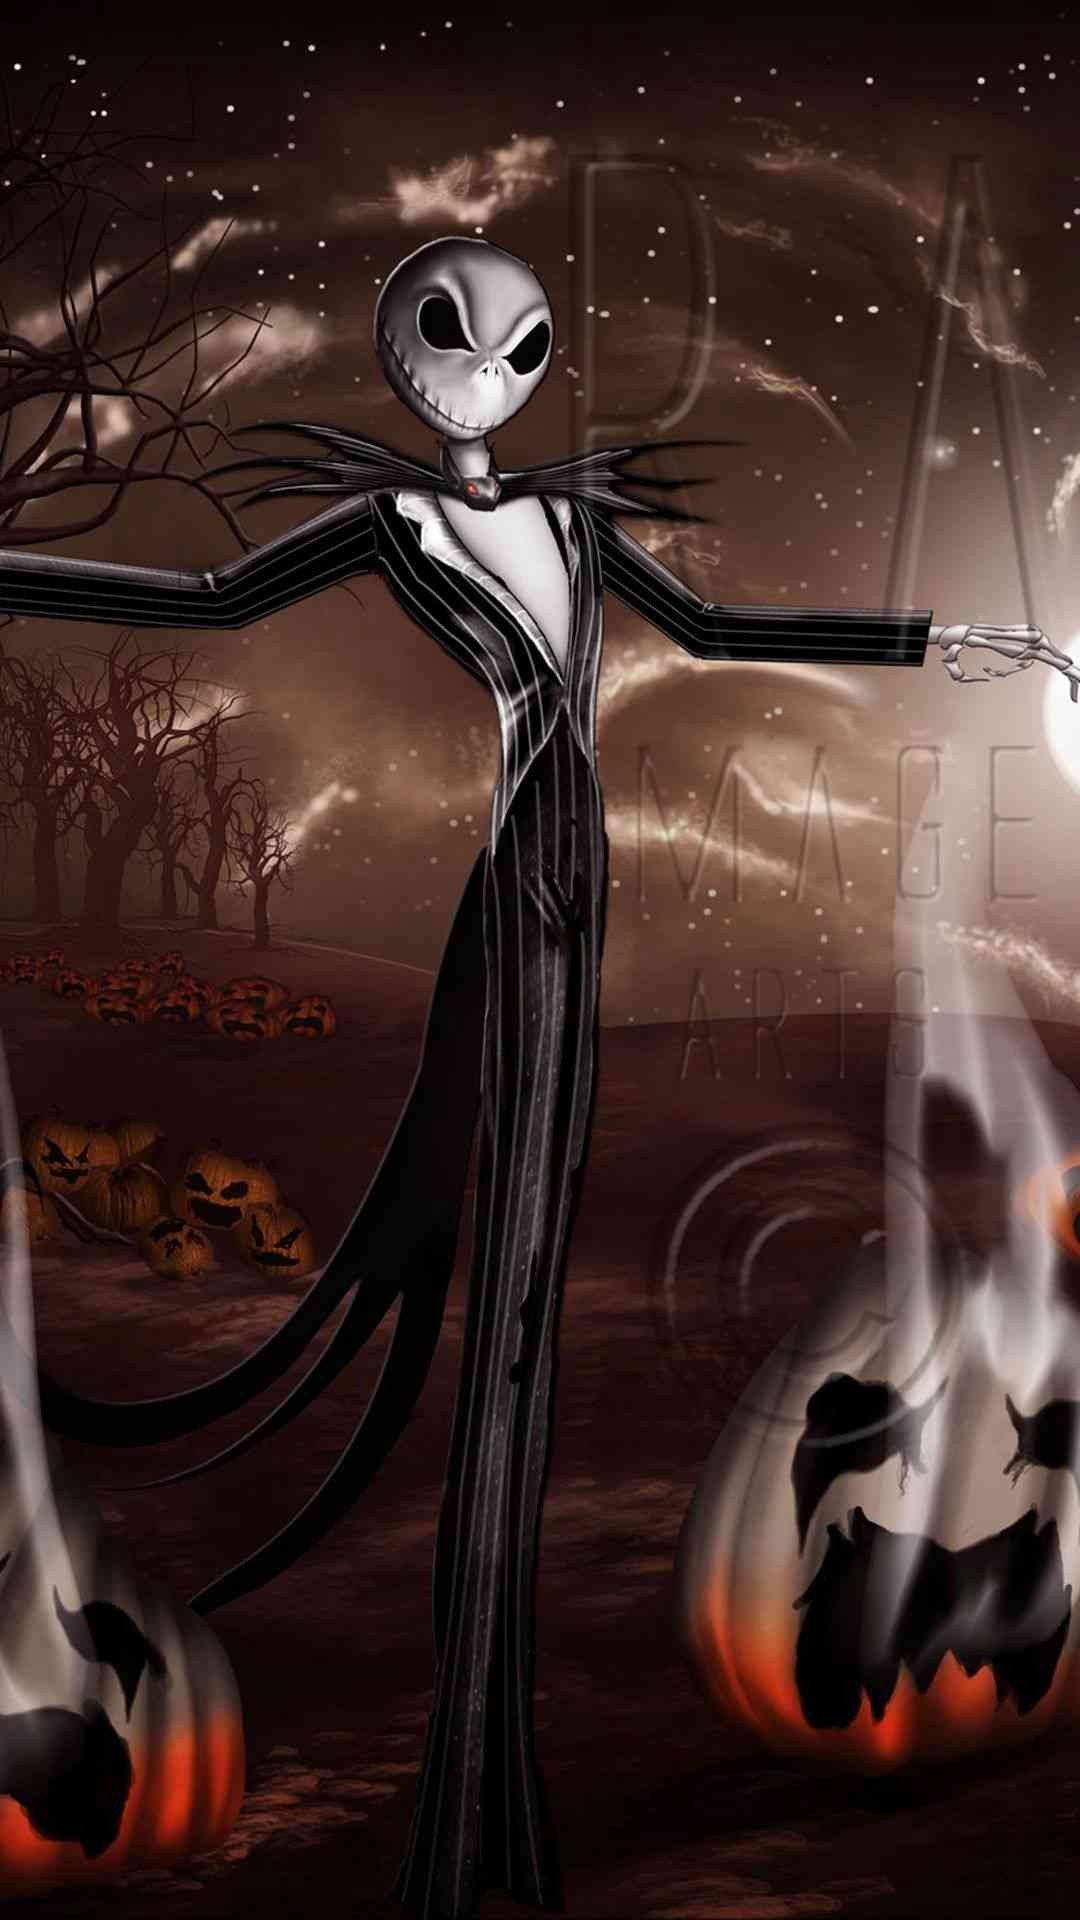 Jack Skellington Iphone Wallpaper The Night Before Christmas Wallpaper 69 Images